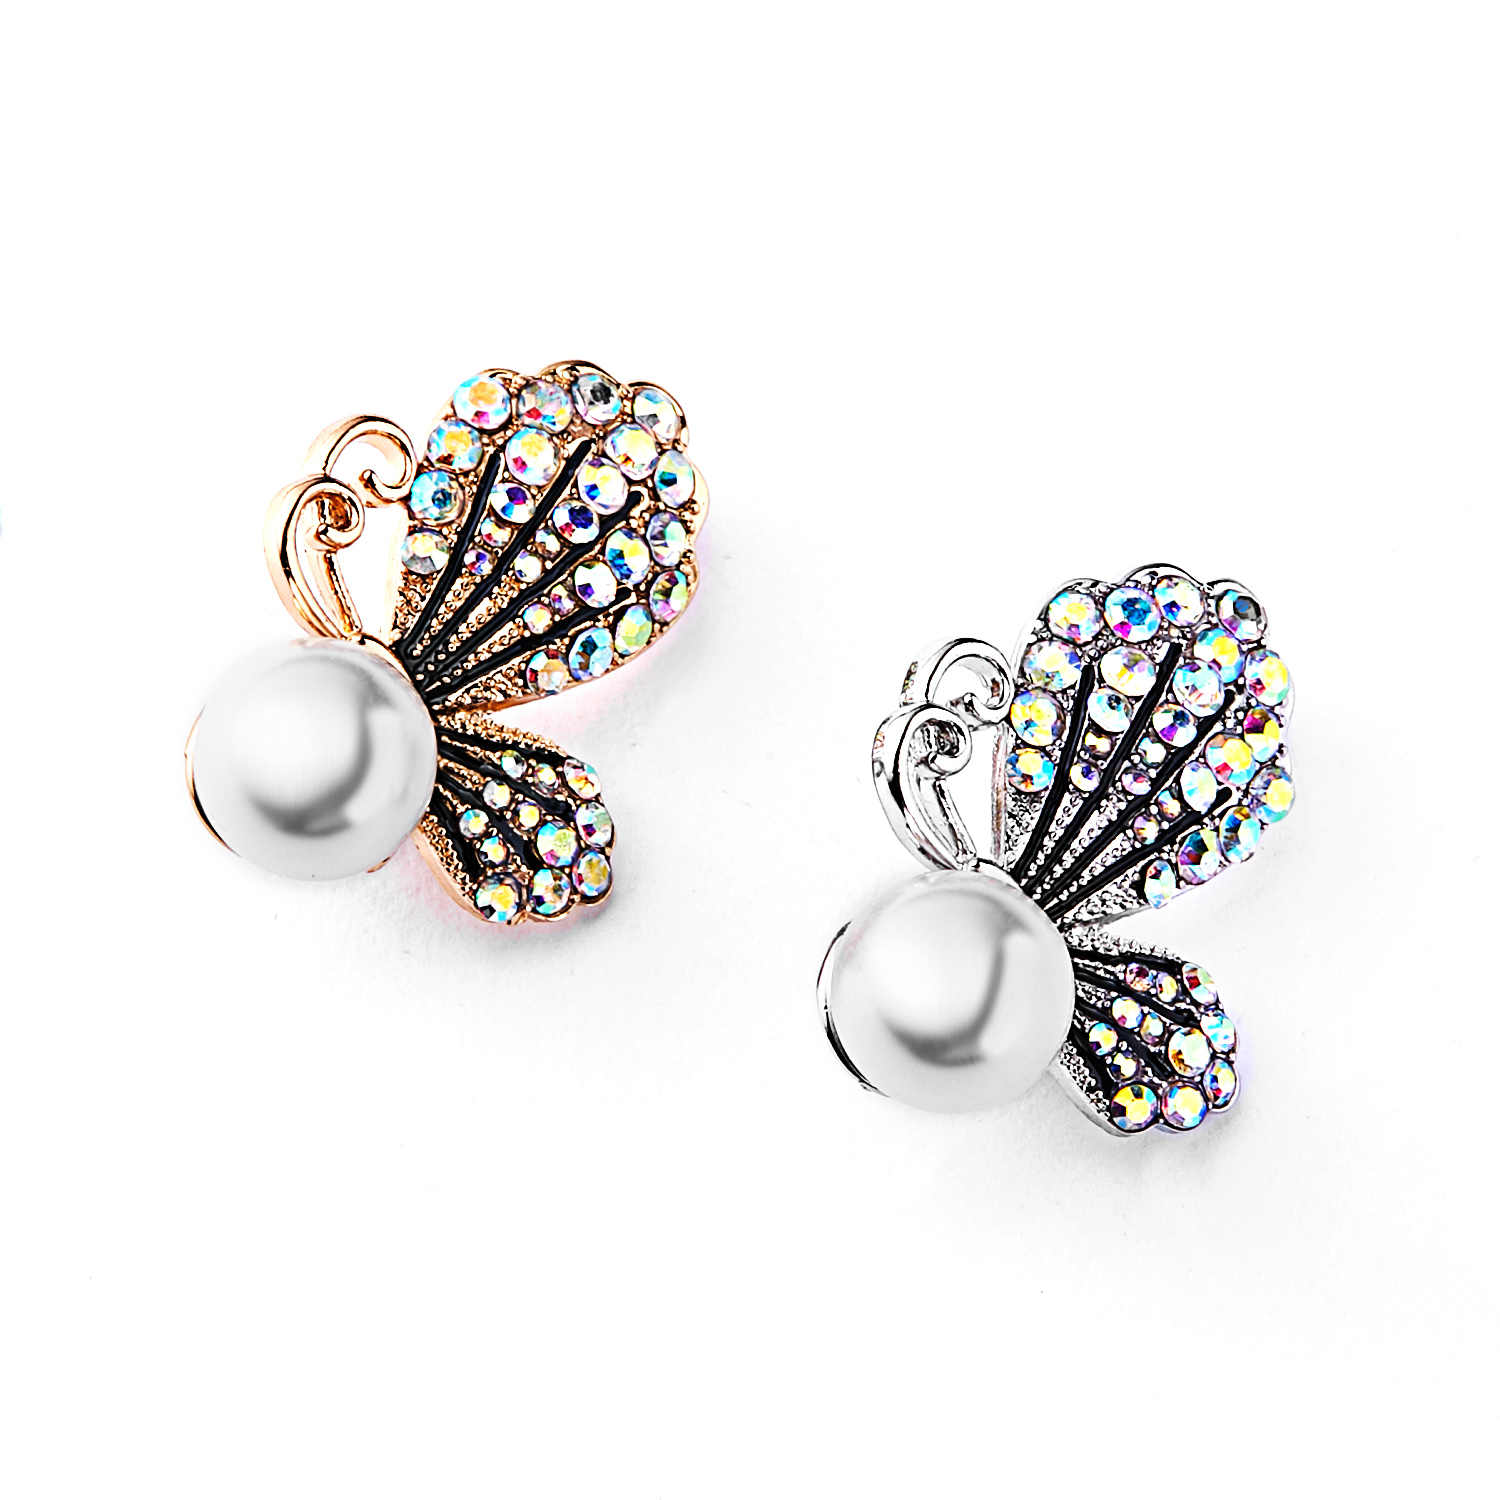 04d11c80249 ... Rinhoo 2018 Vintage Simulated Pearl Bee Pin Brooch Antique Pin Women  Brooch Pin Costume jewelry Free ...